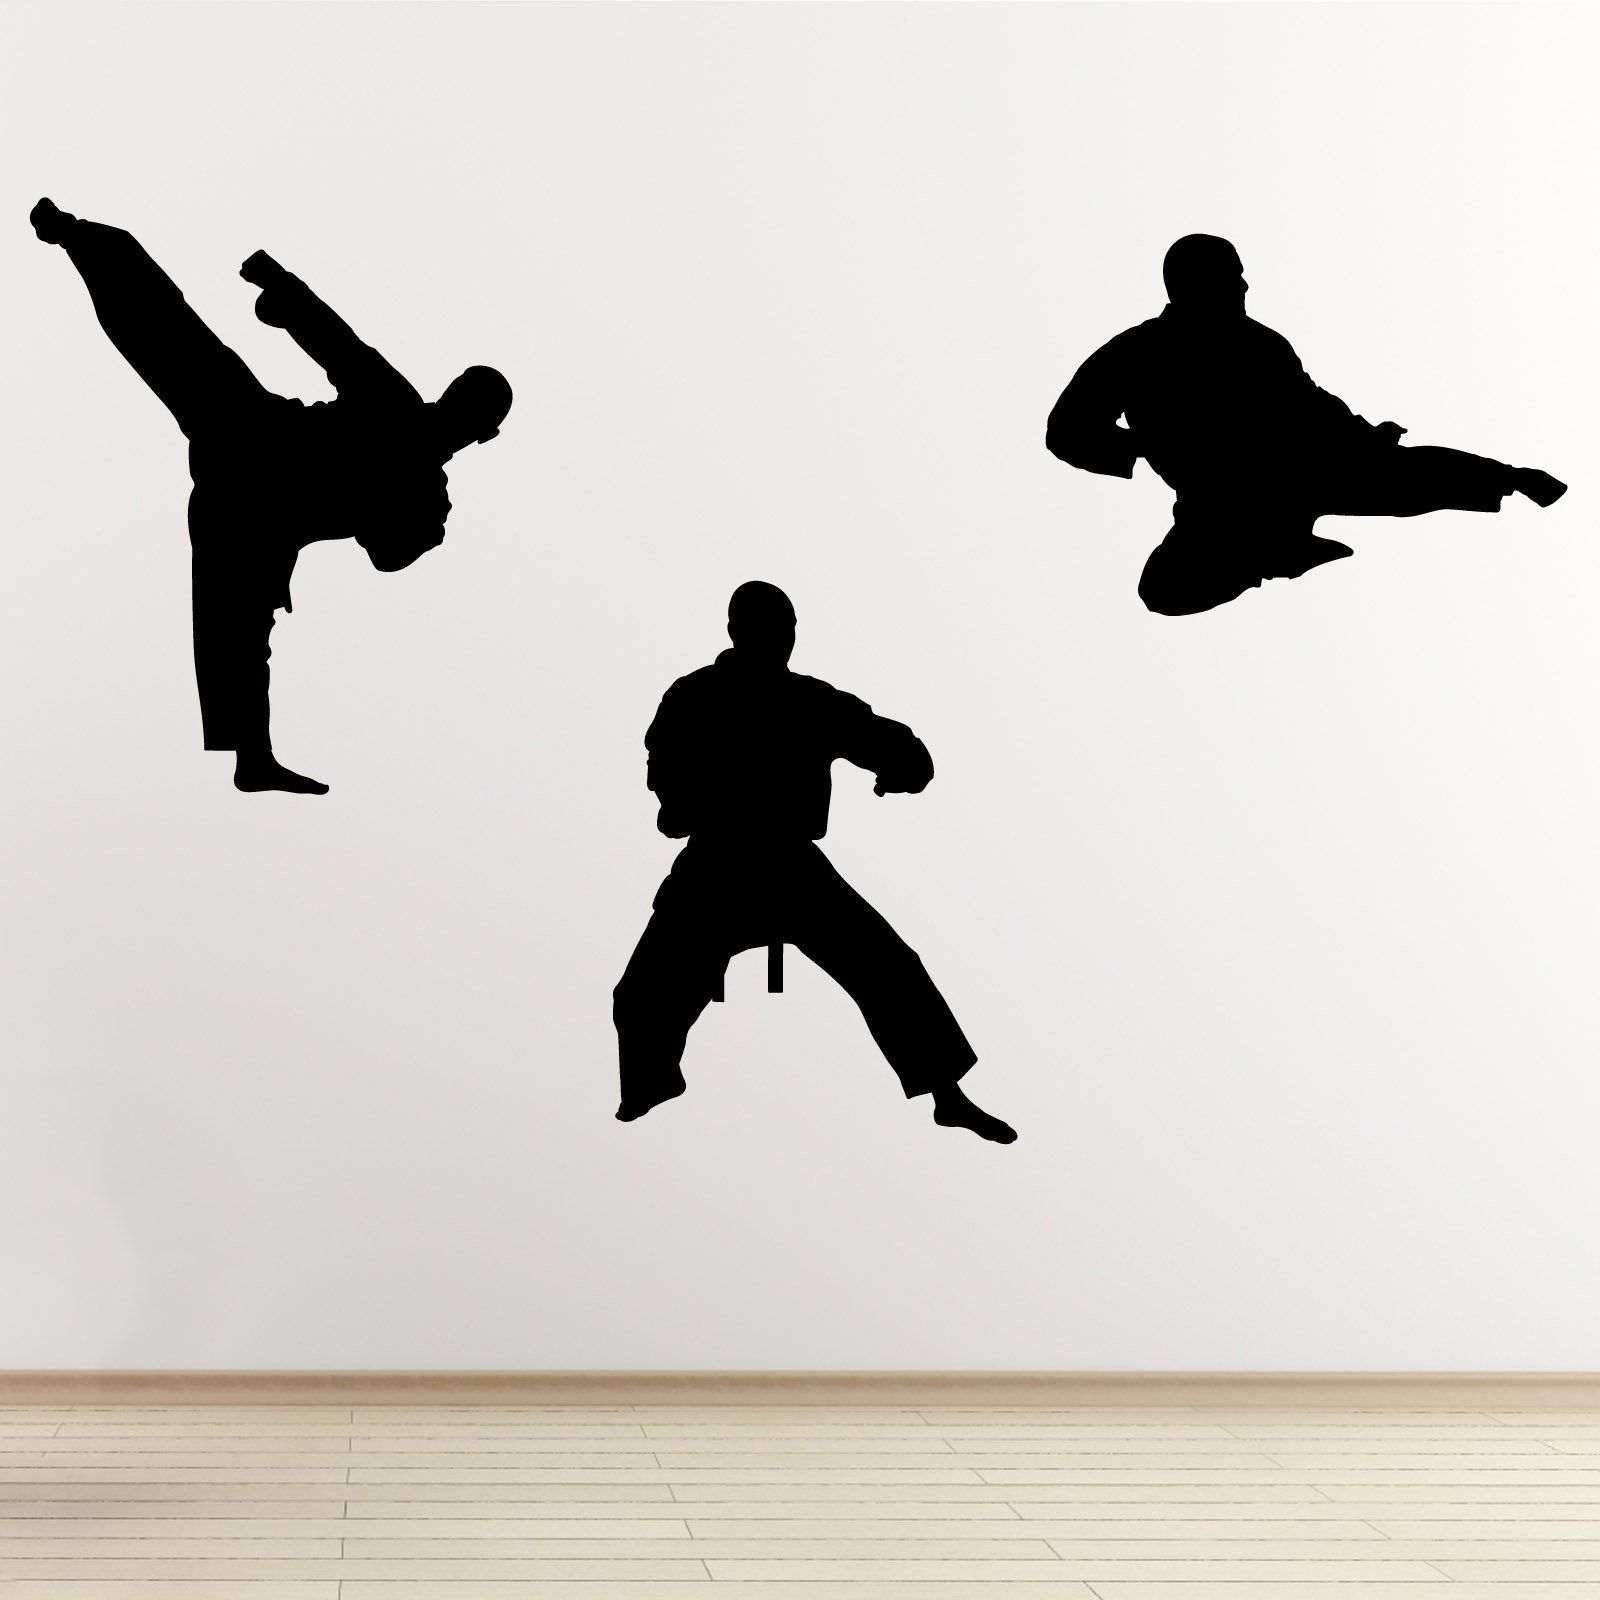 Martial Arts Wall Decal Pack Of 3 Karate Taekwondo Sports Action Stickers Martial Arts Decoration Silhouette Wall Art Art Wall